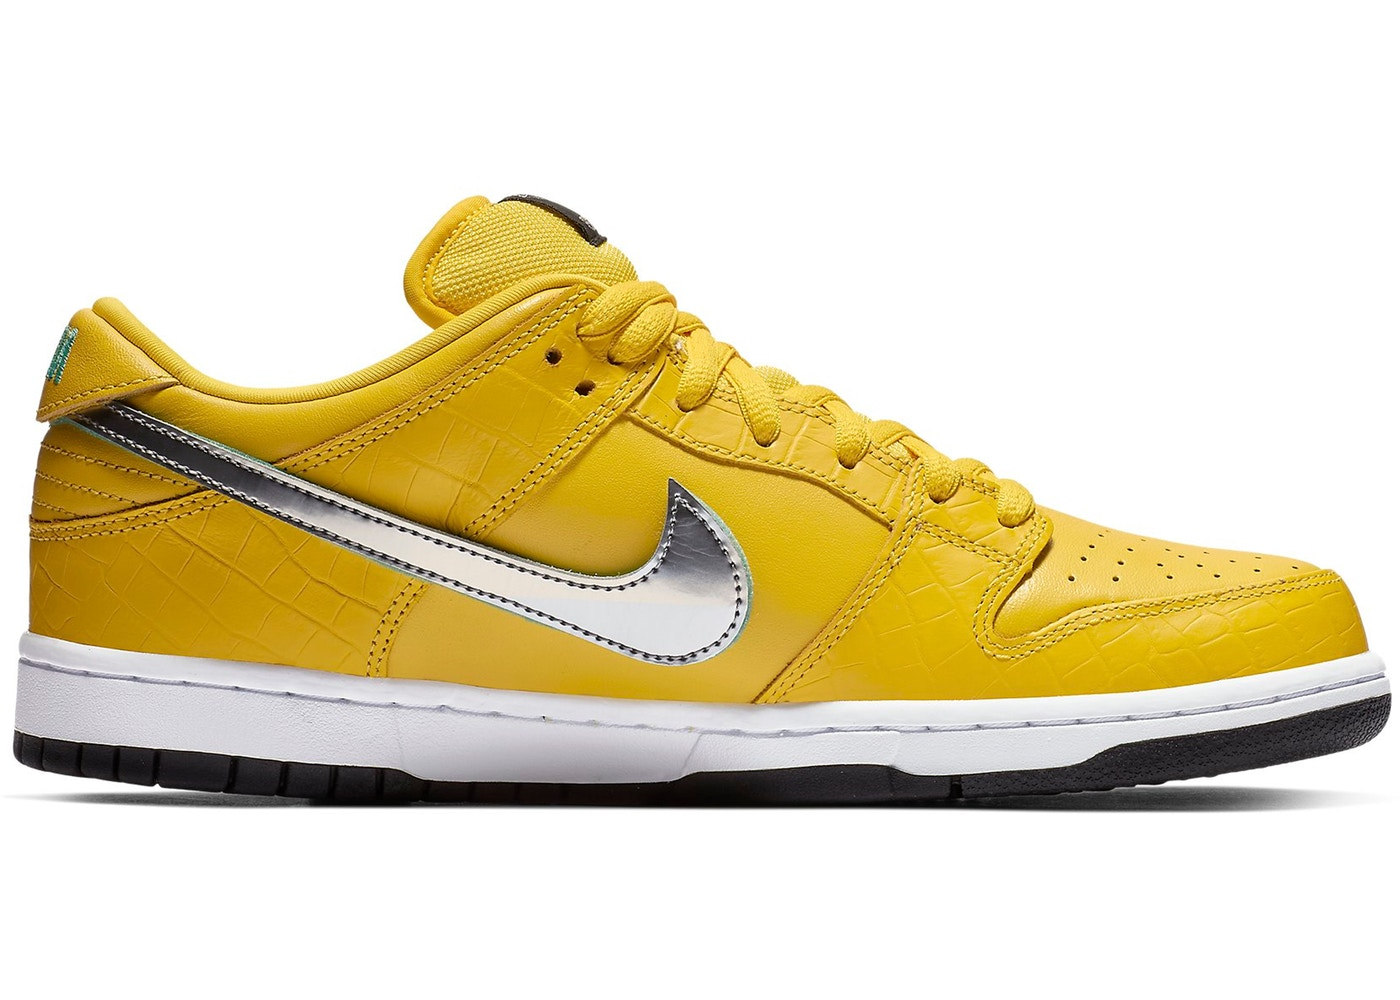 --Nike SB Dunk Low Diamond Supply Co Canary Diamond (Friends and Family)--